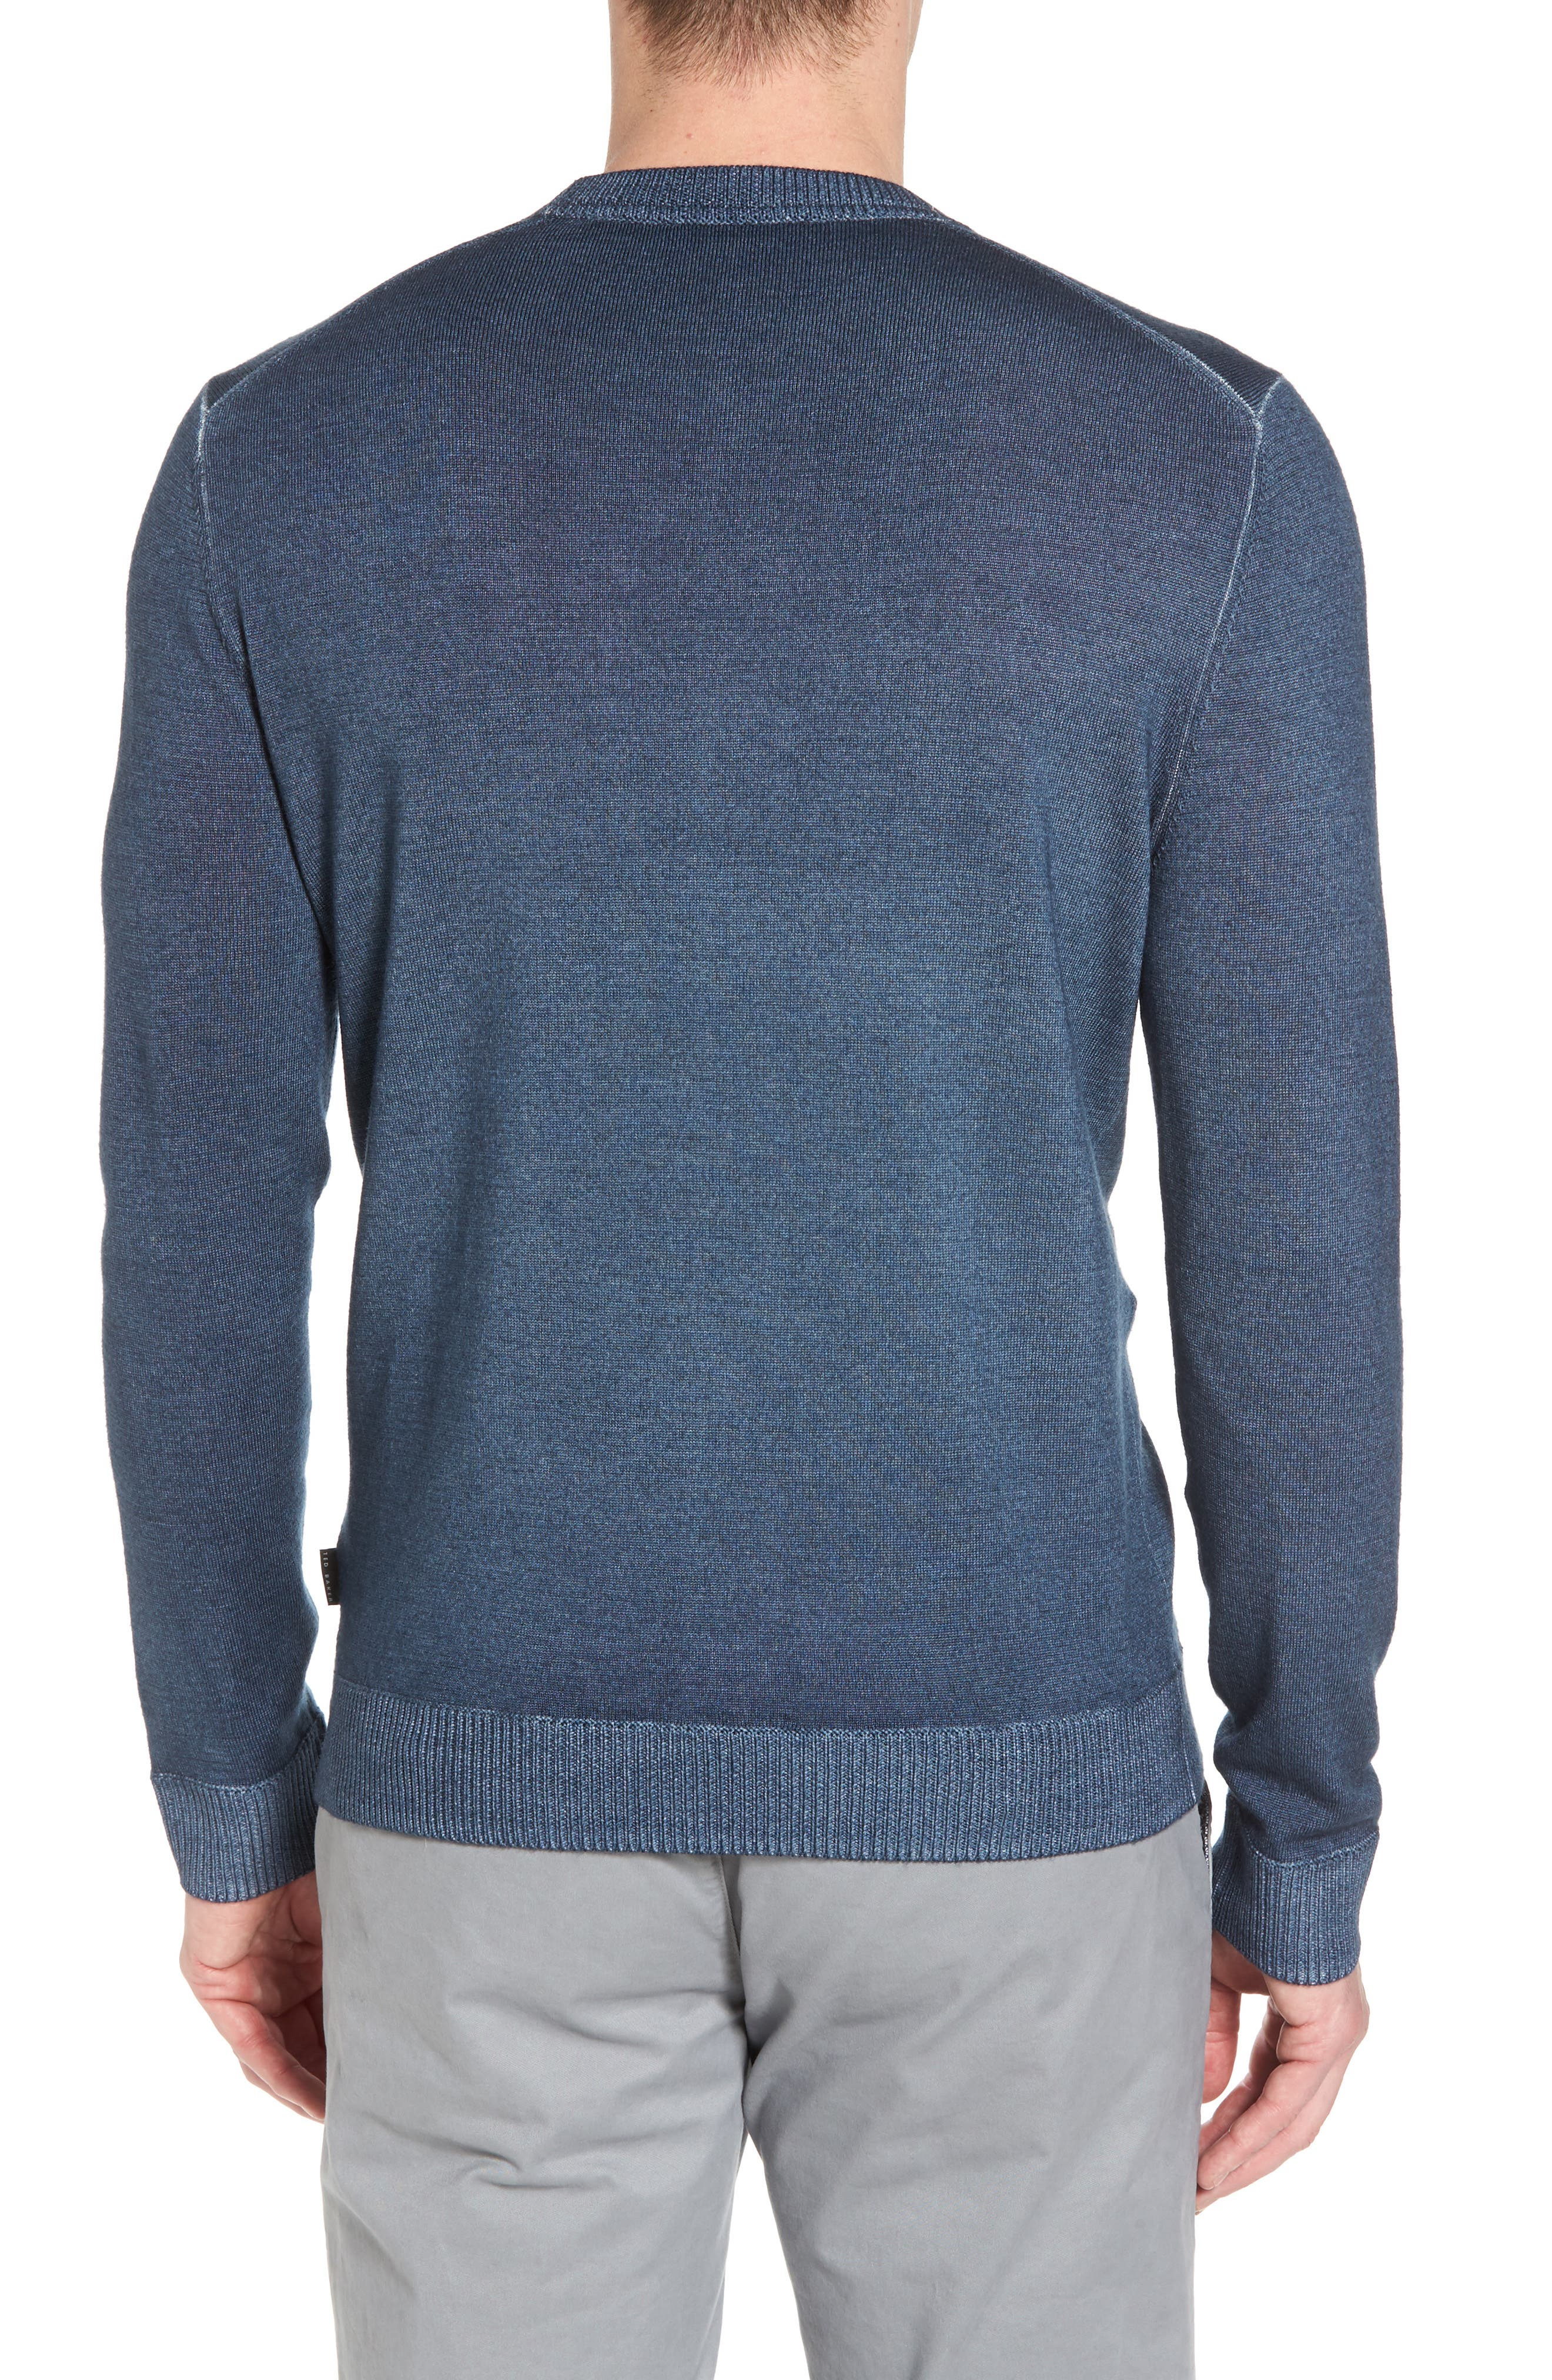 Lucky Trim Fit Wool Sweater,                             Alternate thumbnail 2, color,                             Mid Blue